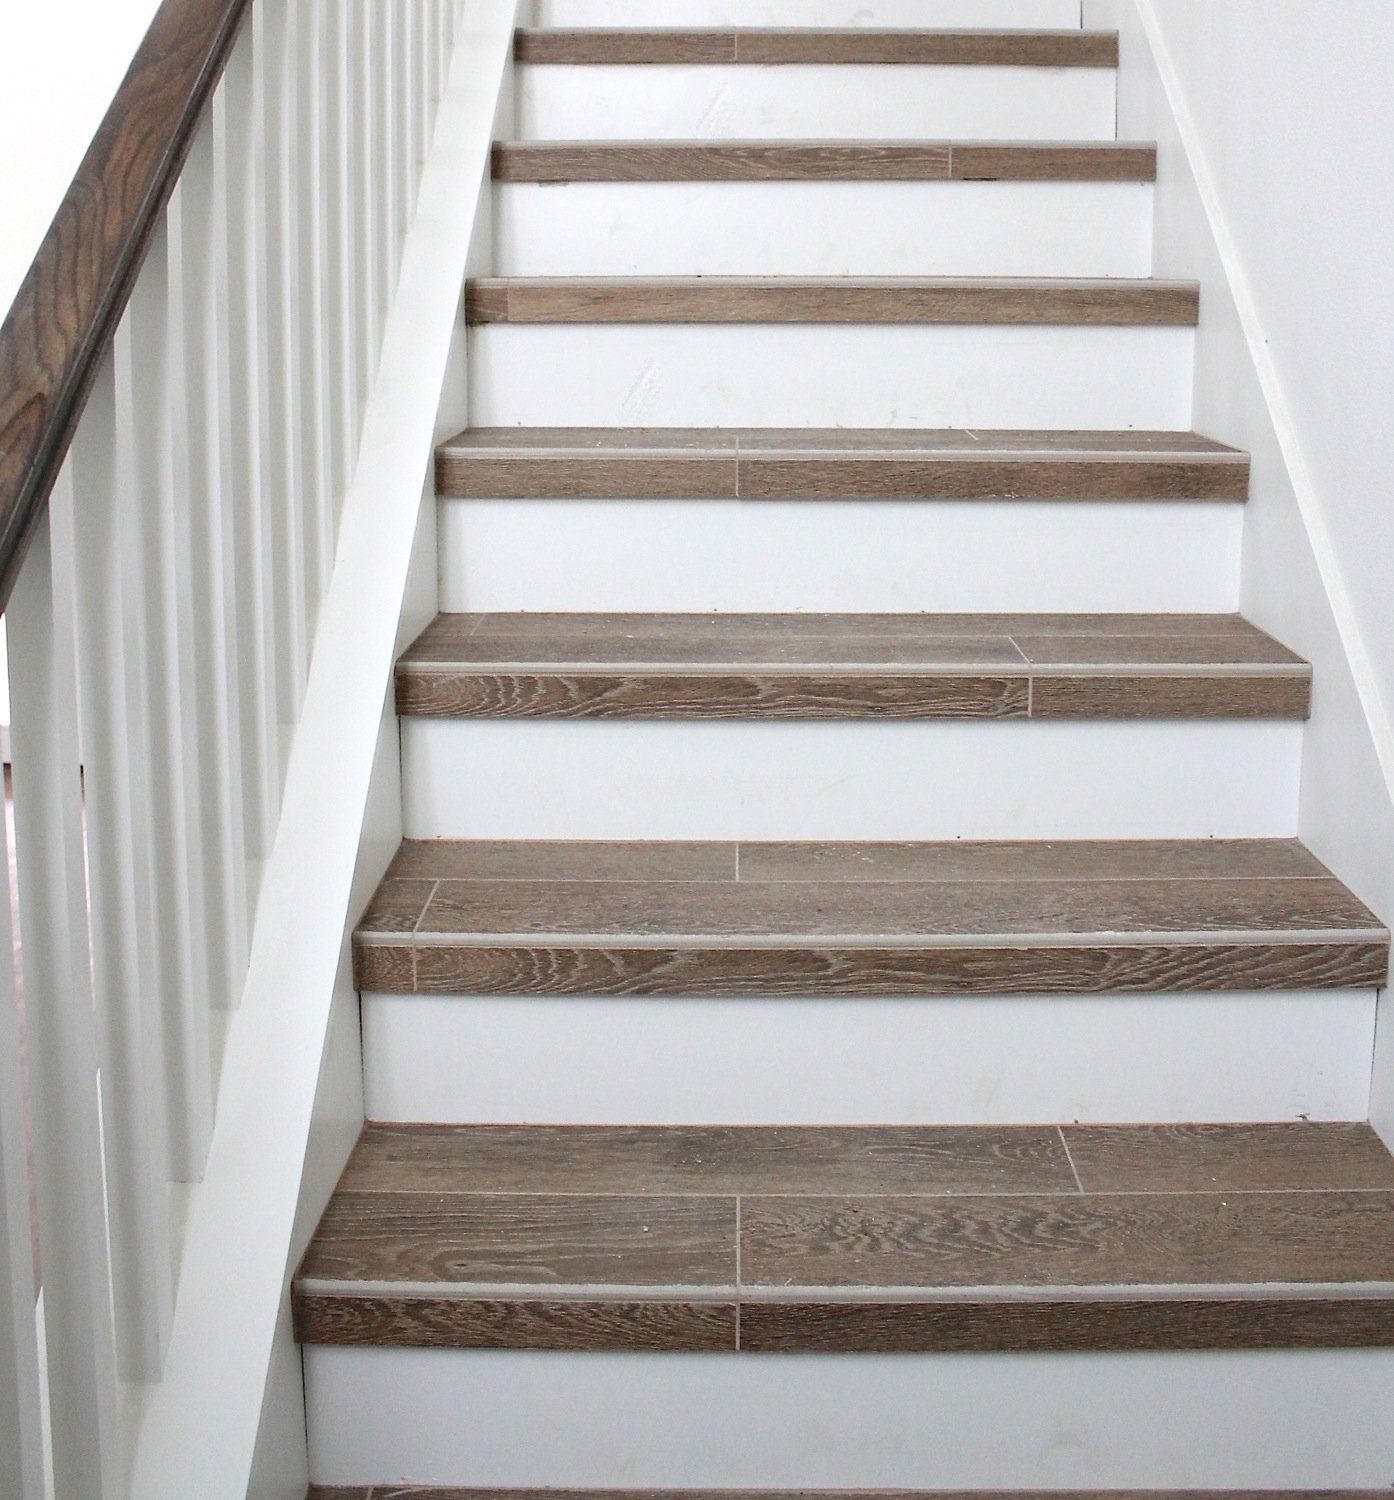 Redo Stairs Cheap Kinggeorgehomescom Wp Content Uploads 2015 05 Interior Wood Plank